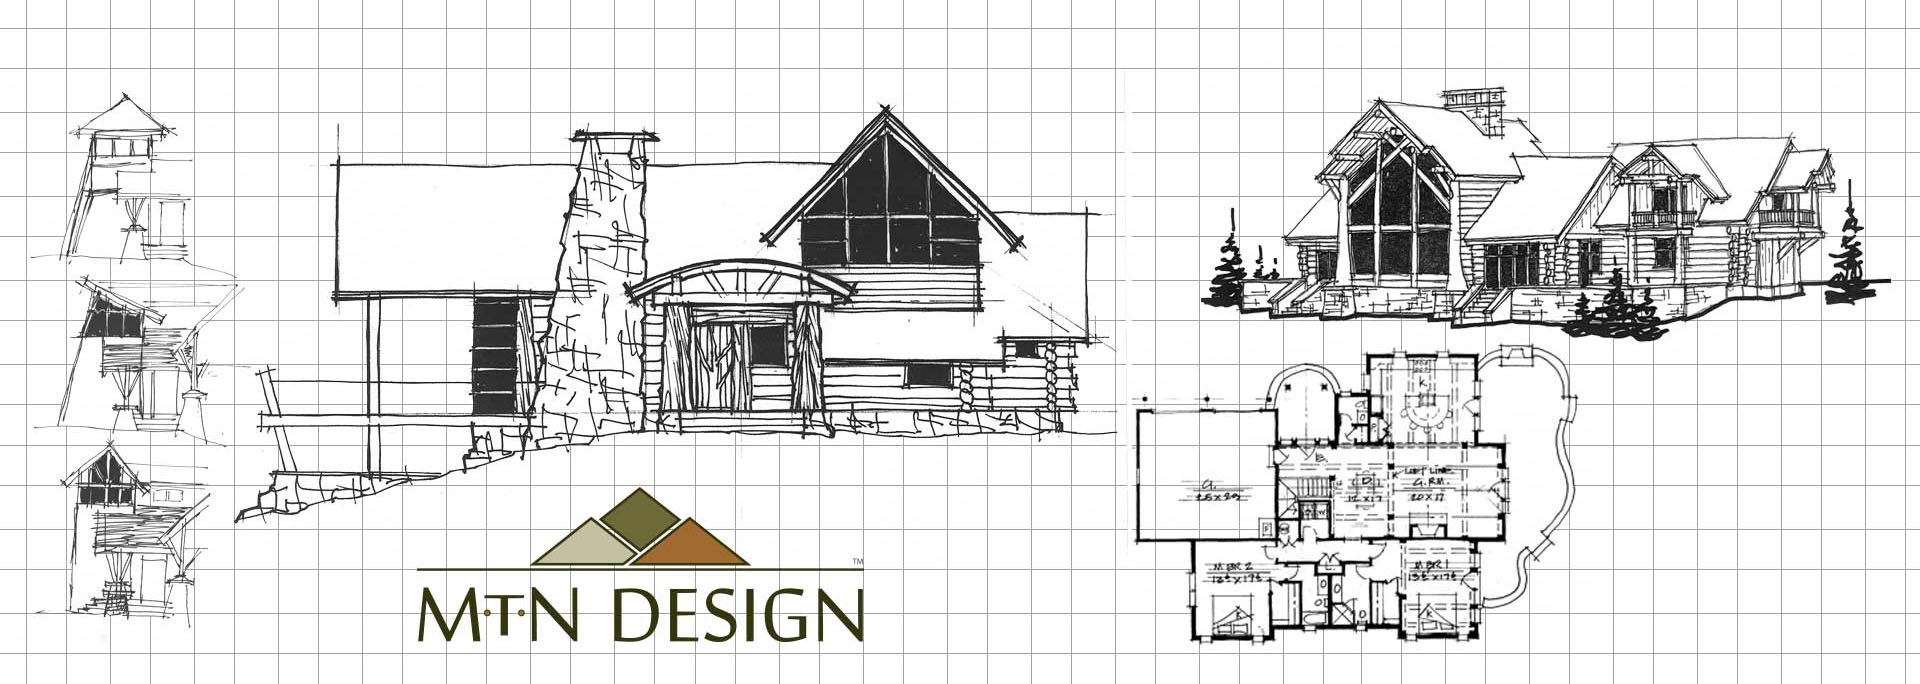 M.T.N Design - Custom log timber design